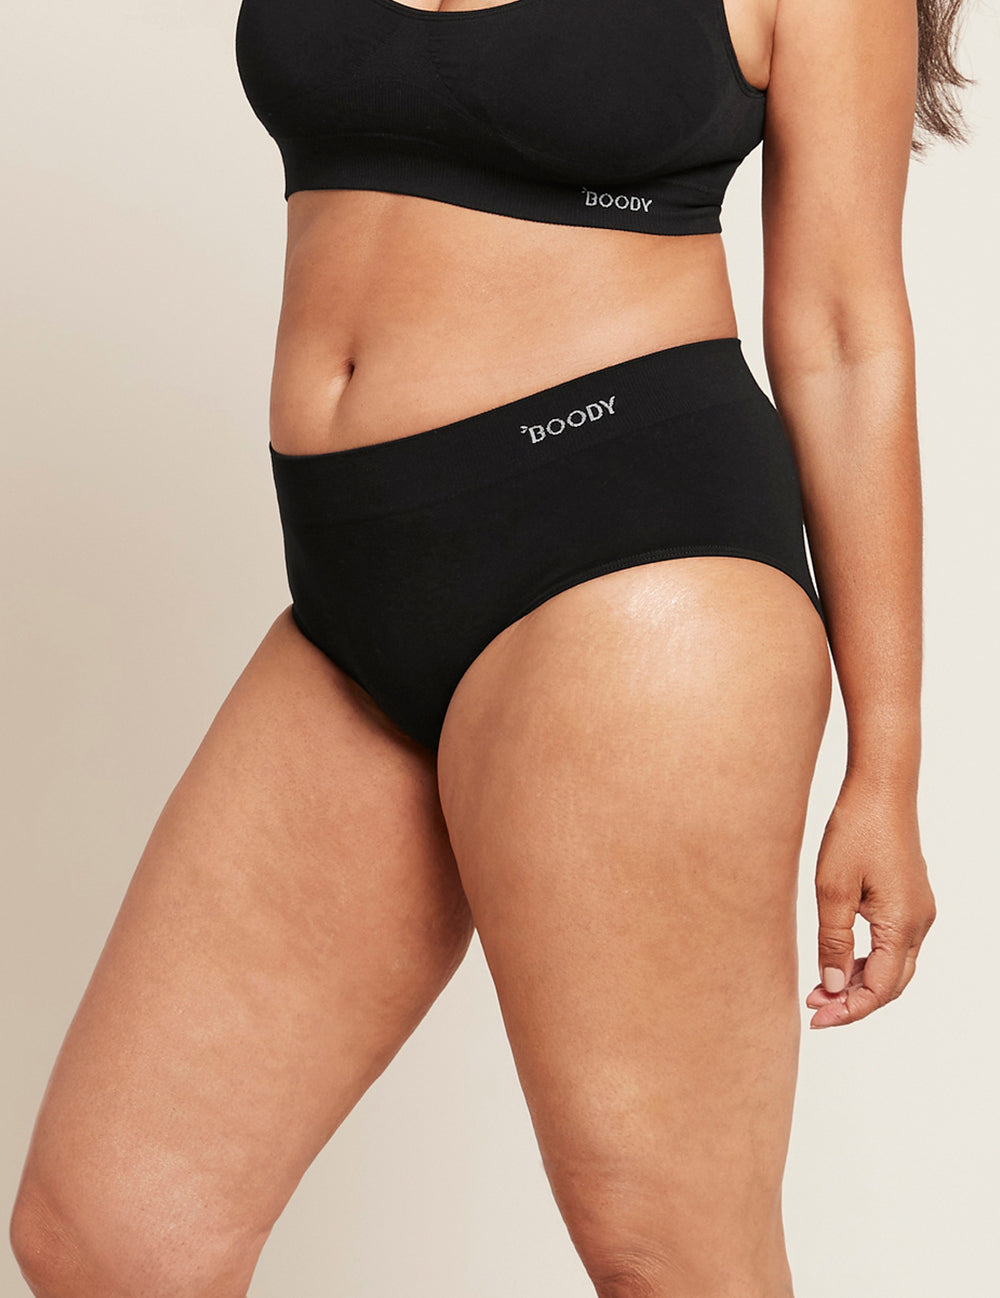 Midi Brief Black - Boody Eco Wear